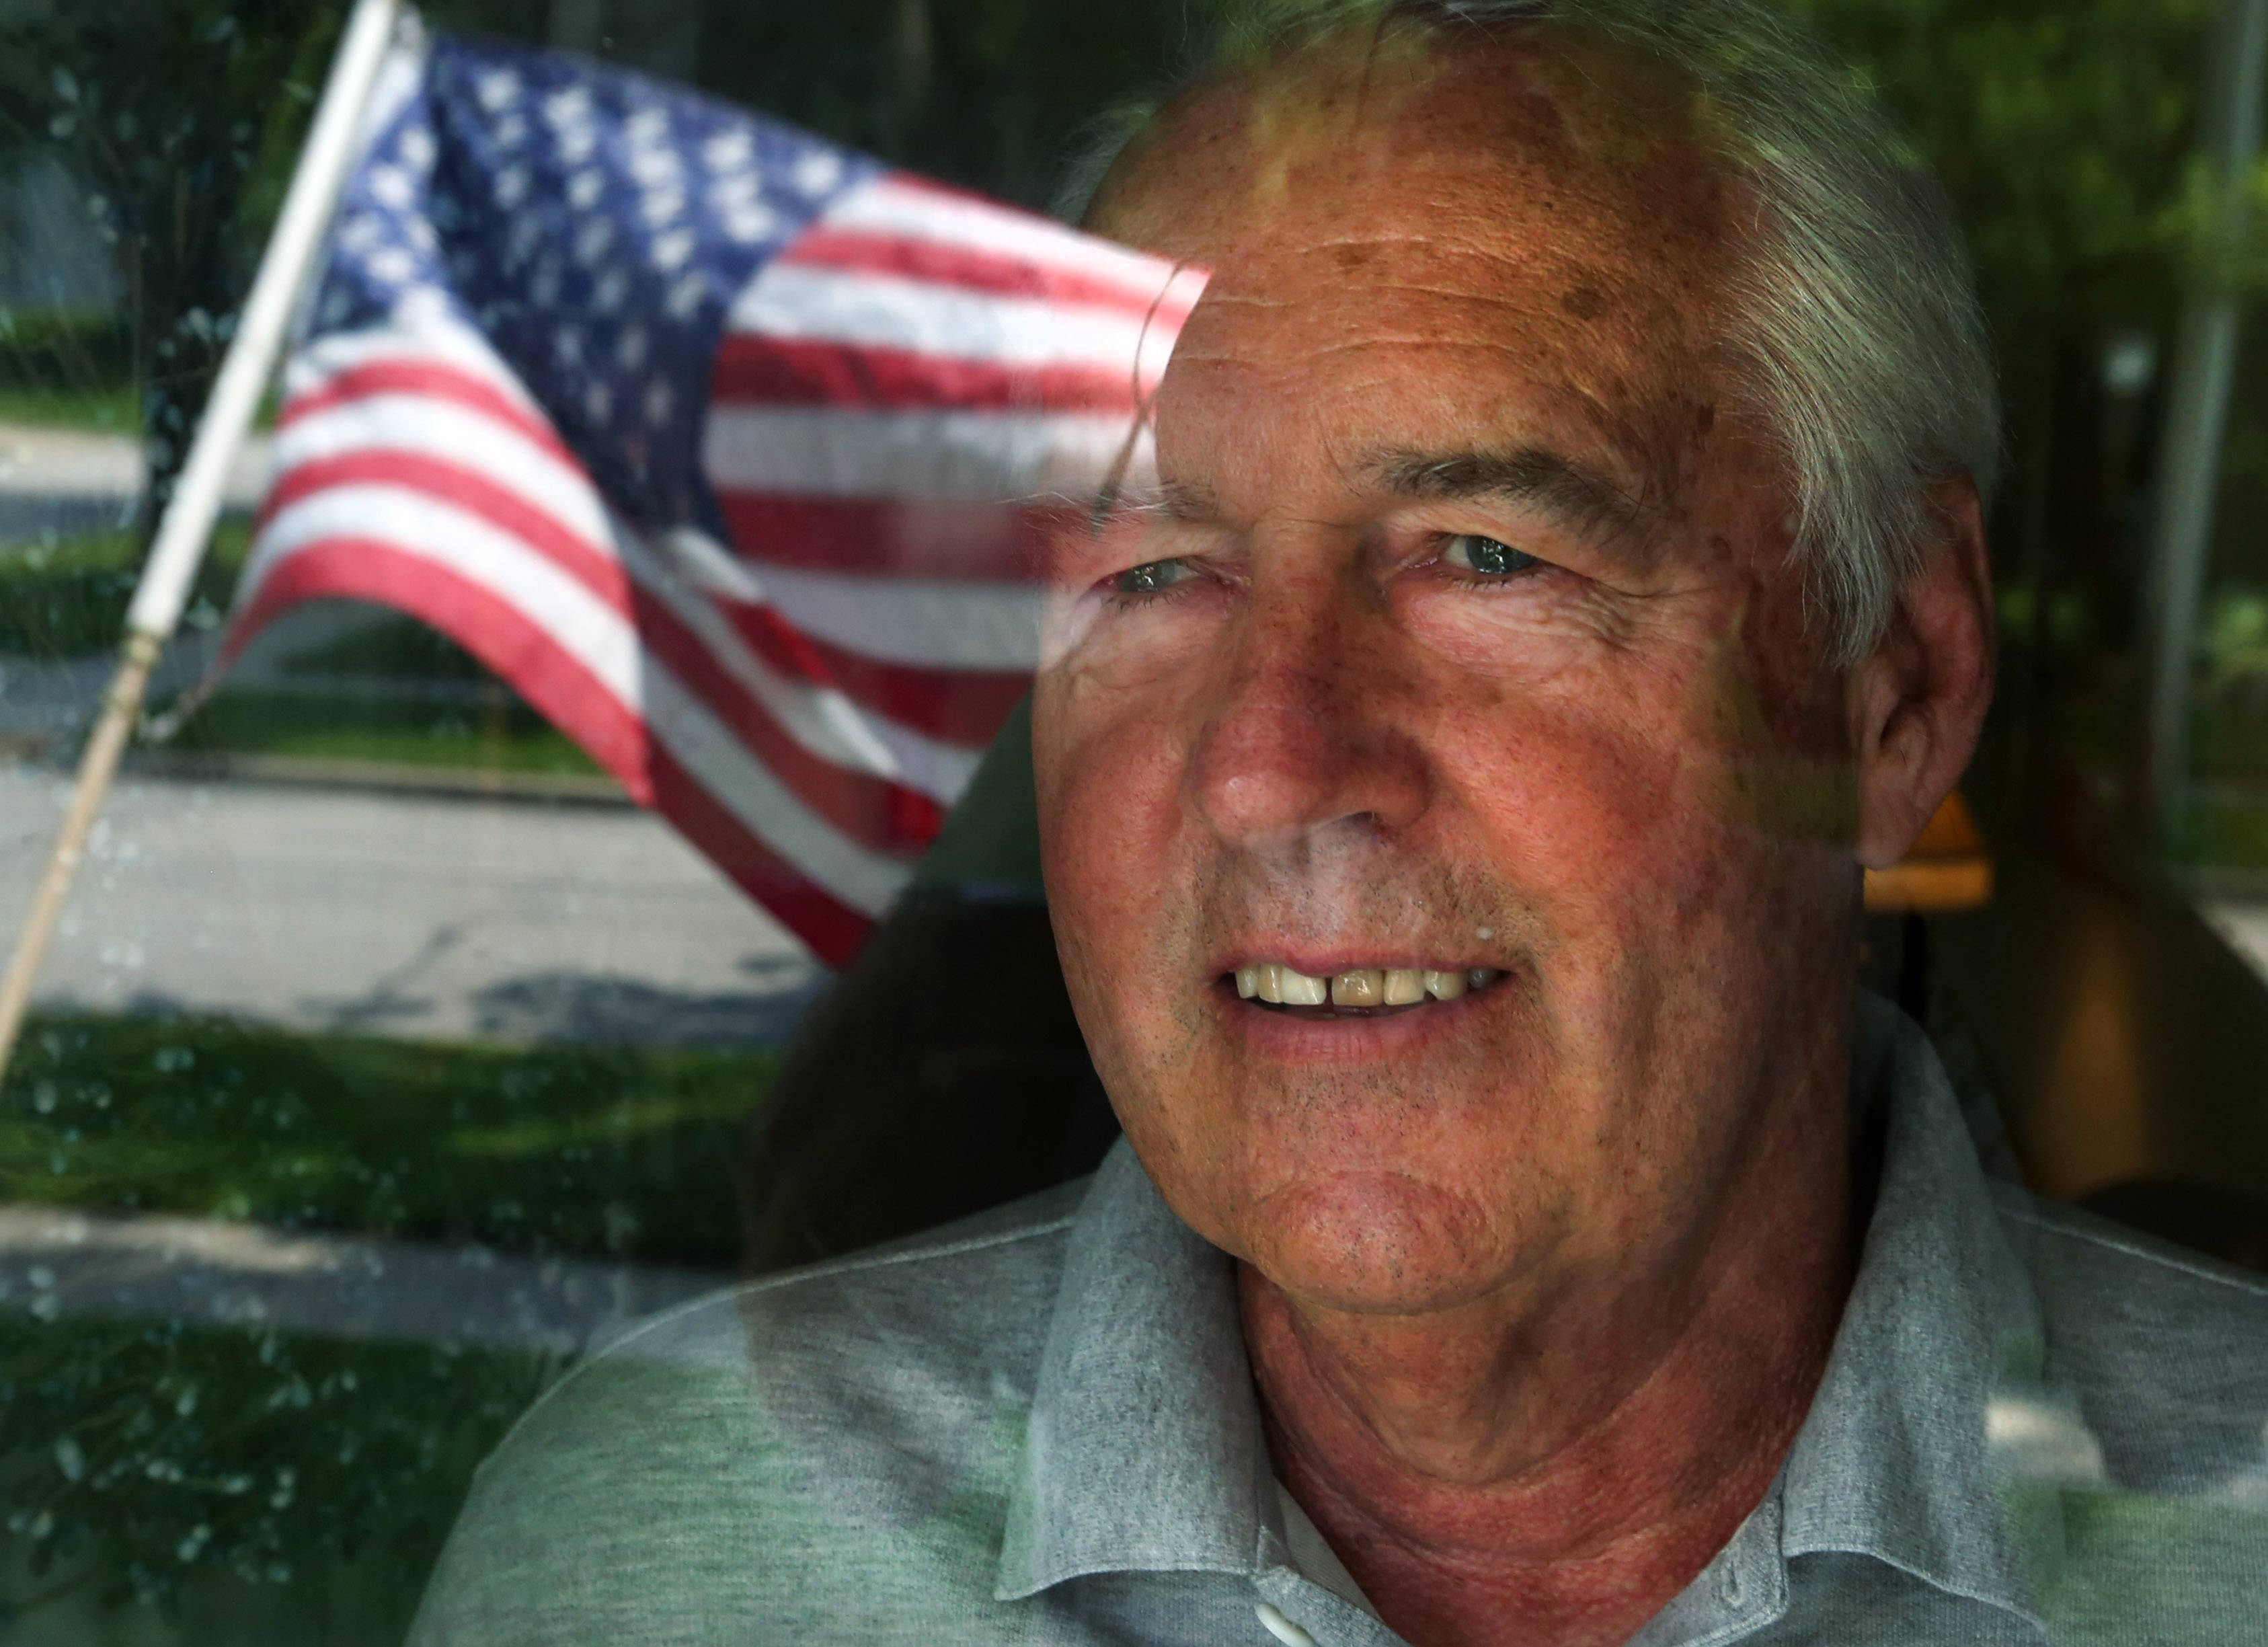 John Malcom looks through his front door window with the reflection of an American flag that is hanging near the front of door of his home in Arlington Heights. Malcom served in the Army National Guard from 1967-1972.